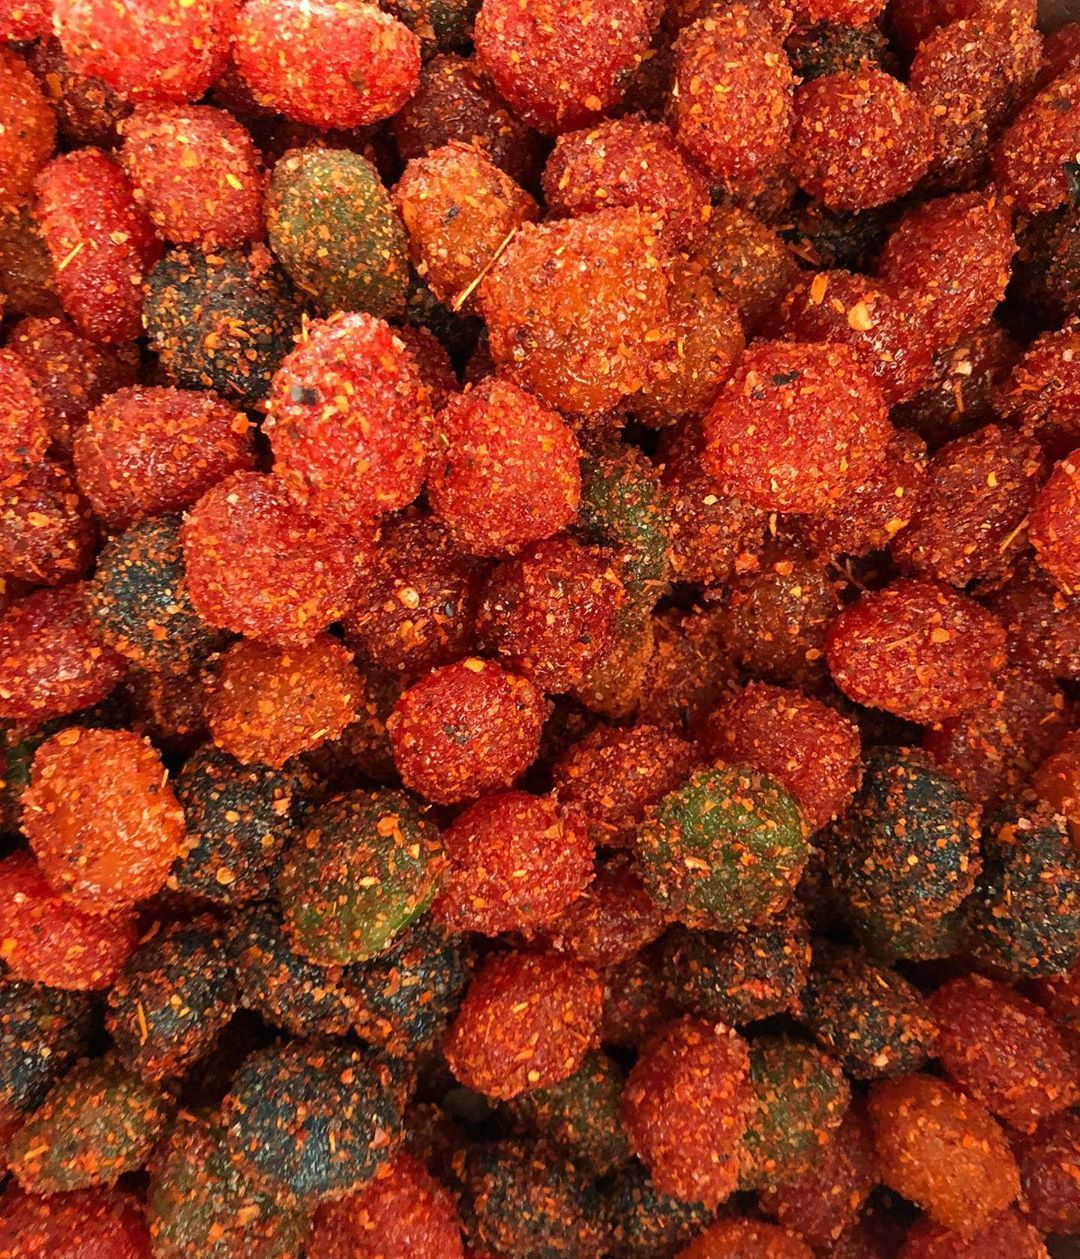 Gushers covered in chili powder are a popular snack and